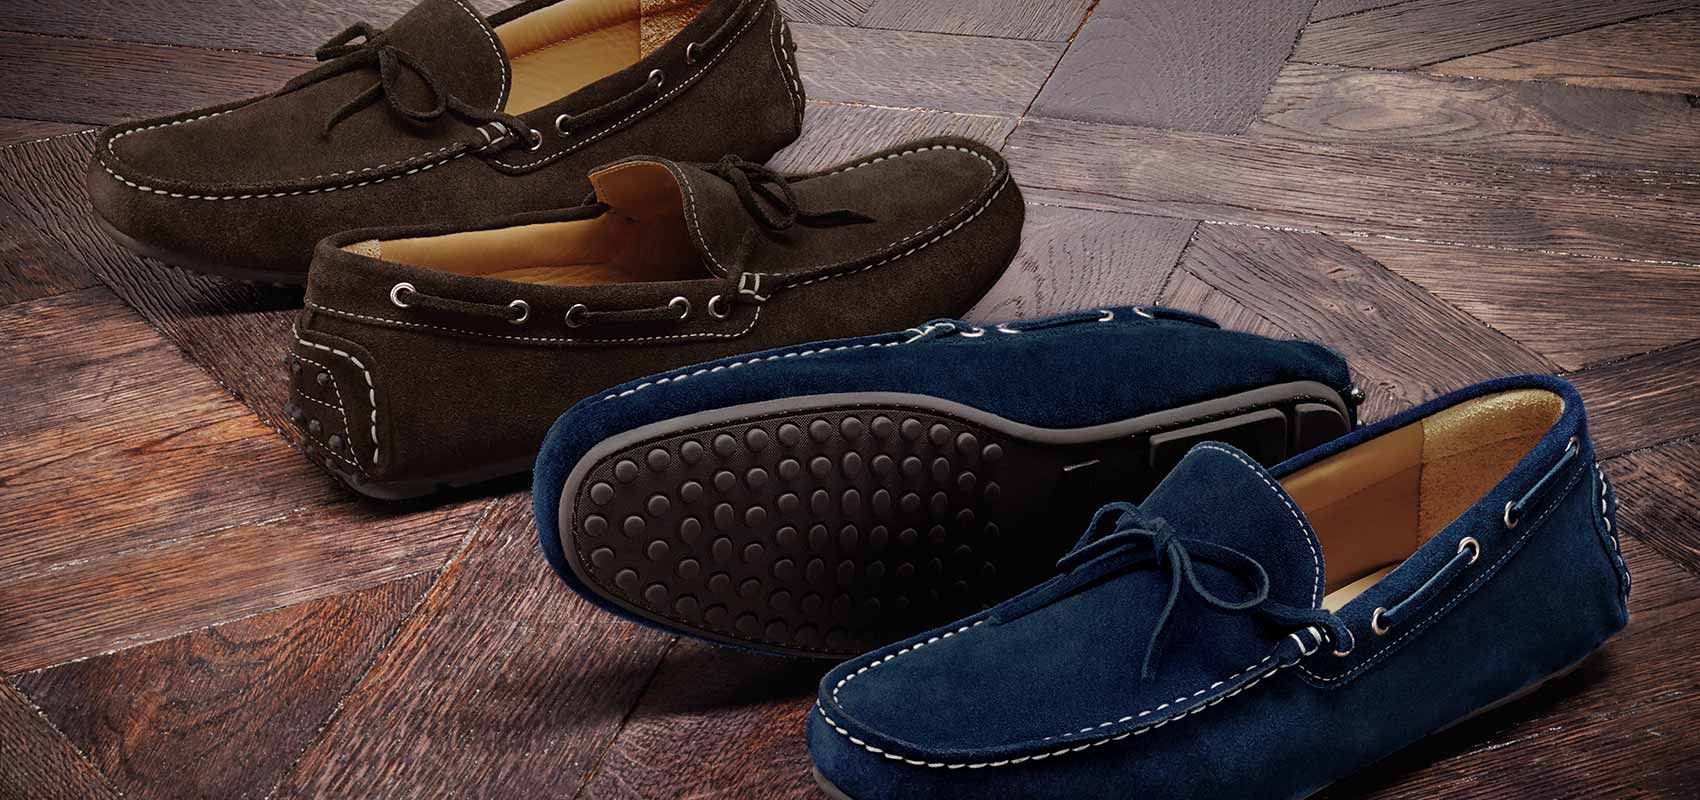 Weekend driving loafers